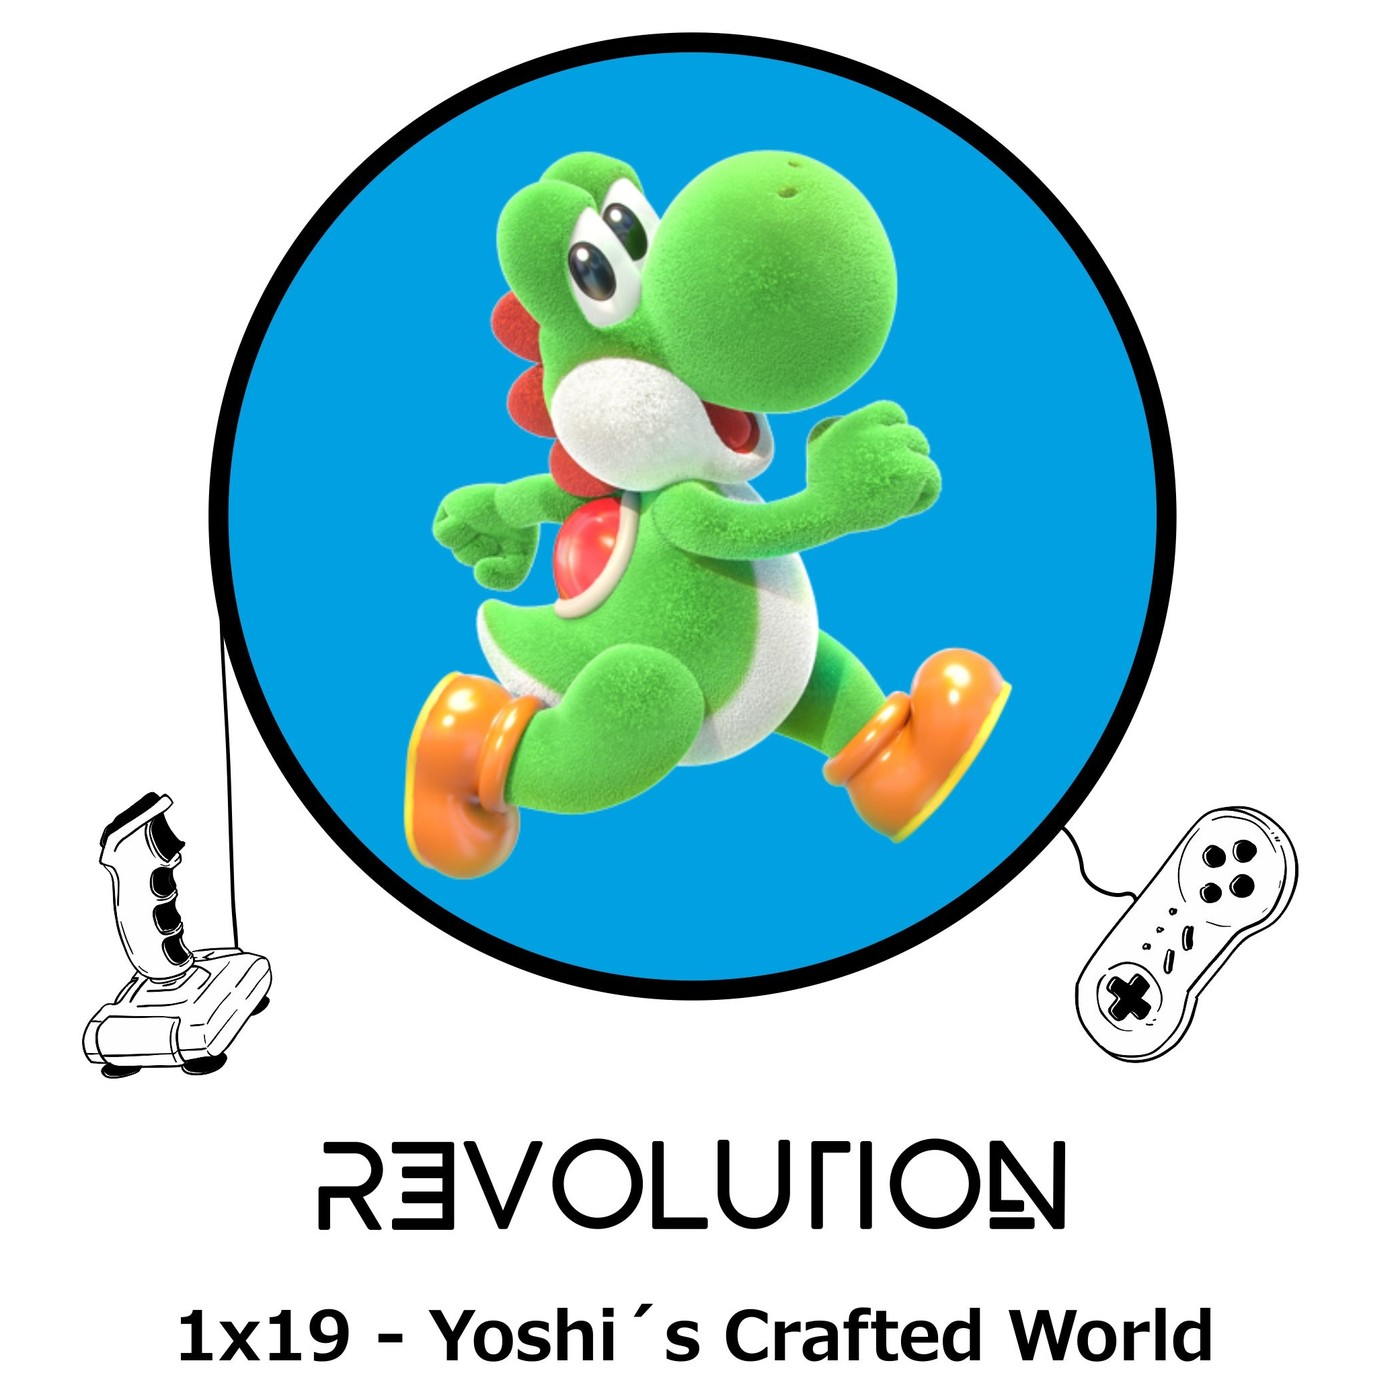 Revolution Podcast - 1x19 - Yoshi's Crafted World